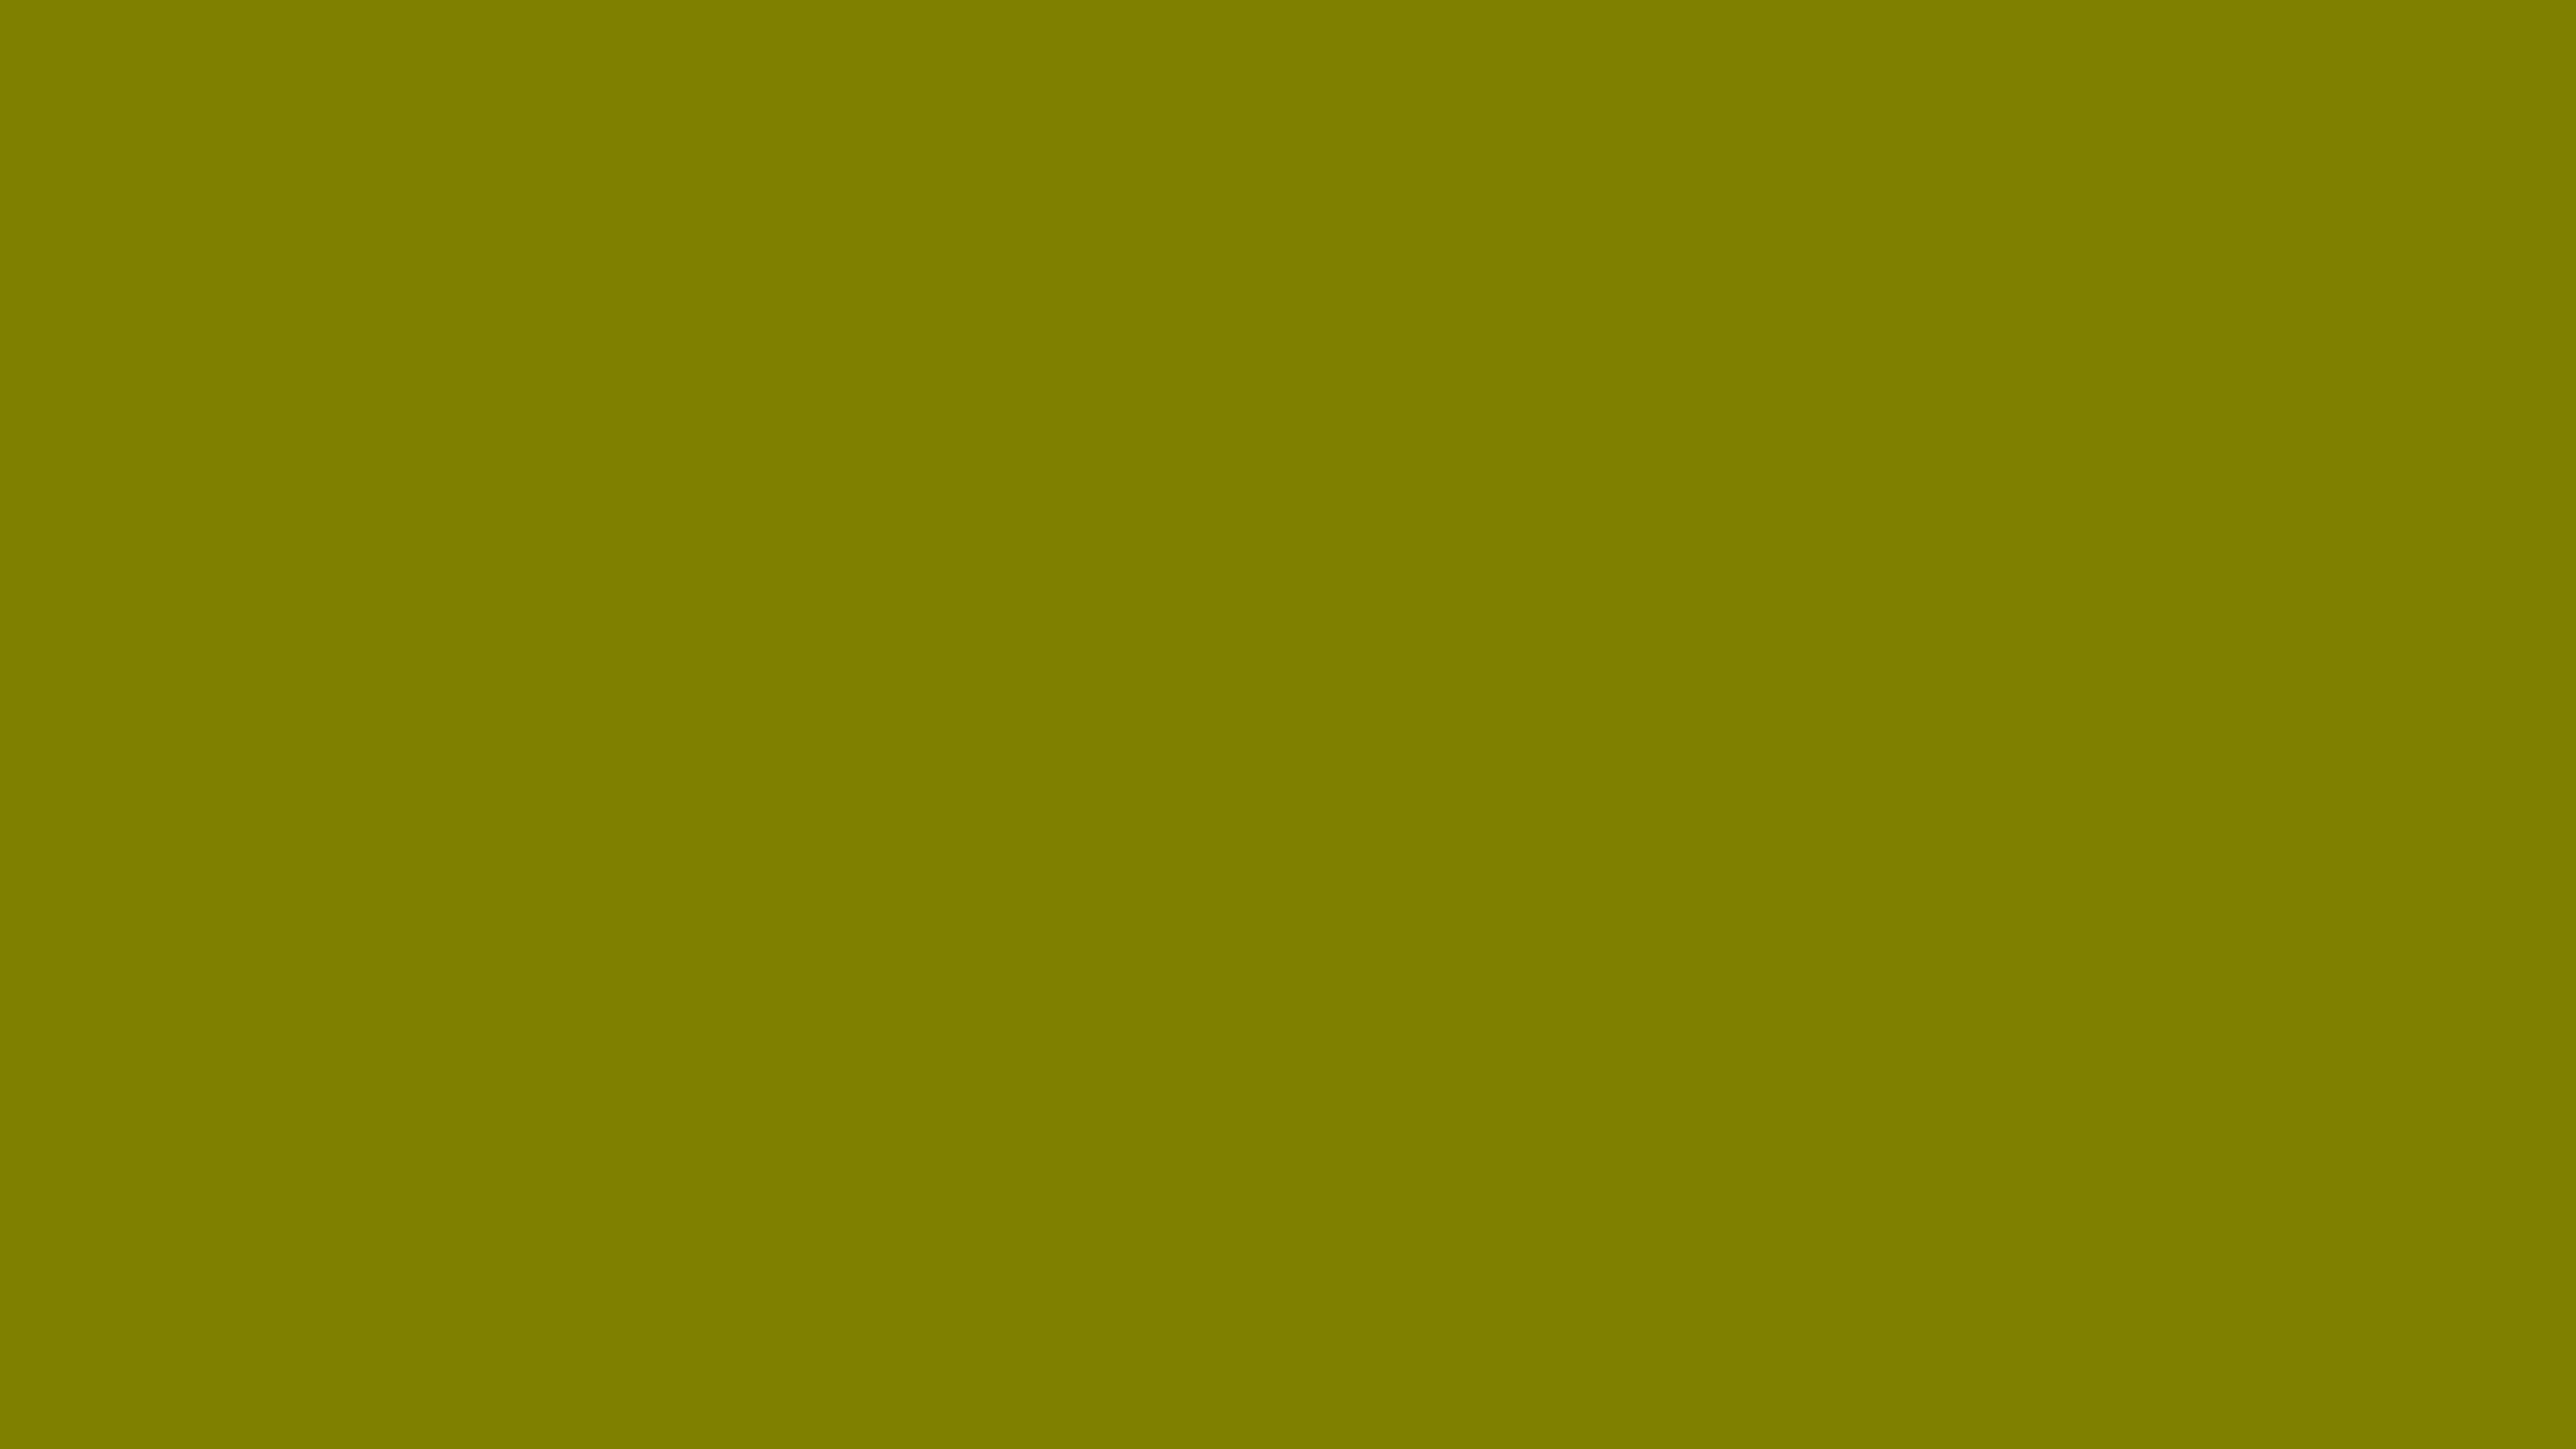 5120x2880 Heart Gold Solid Color Background